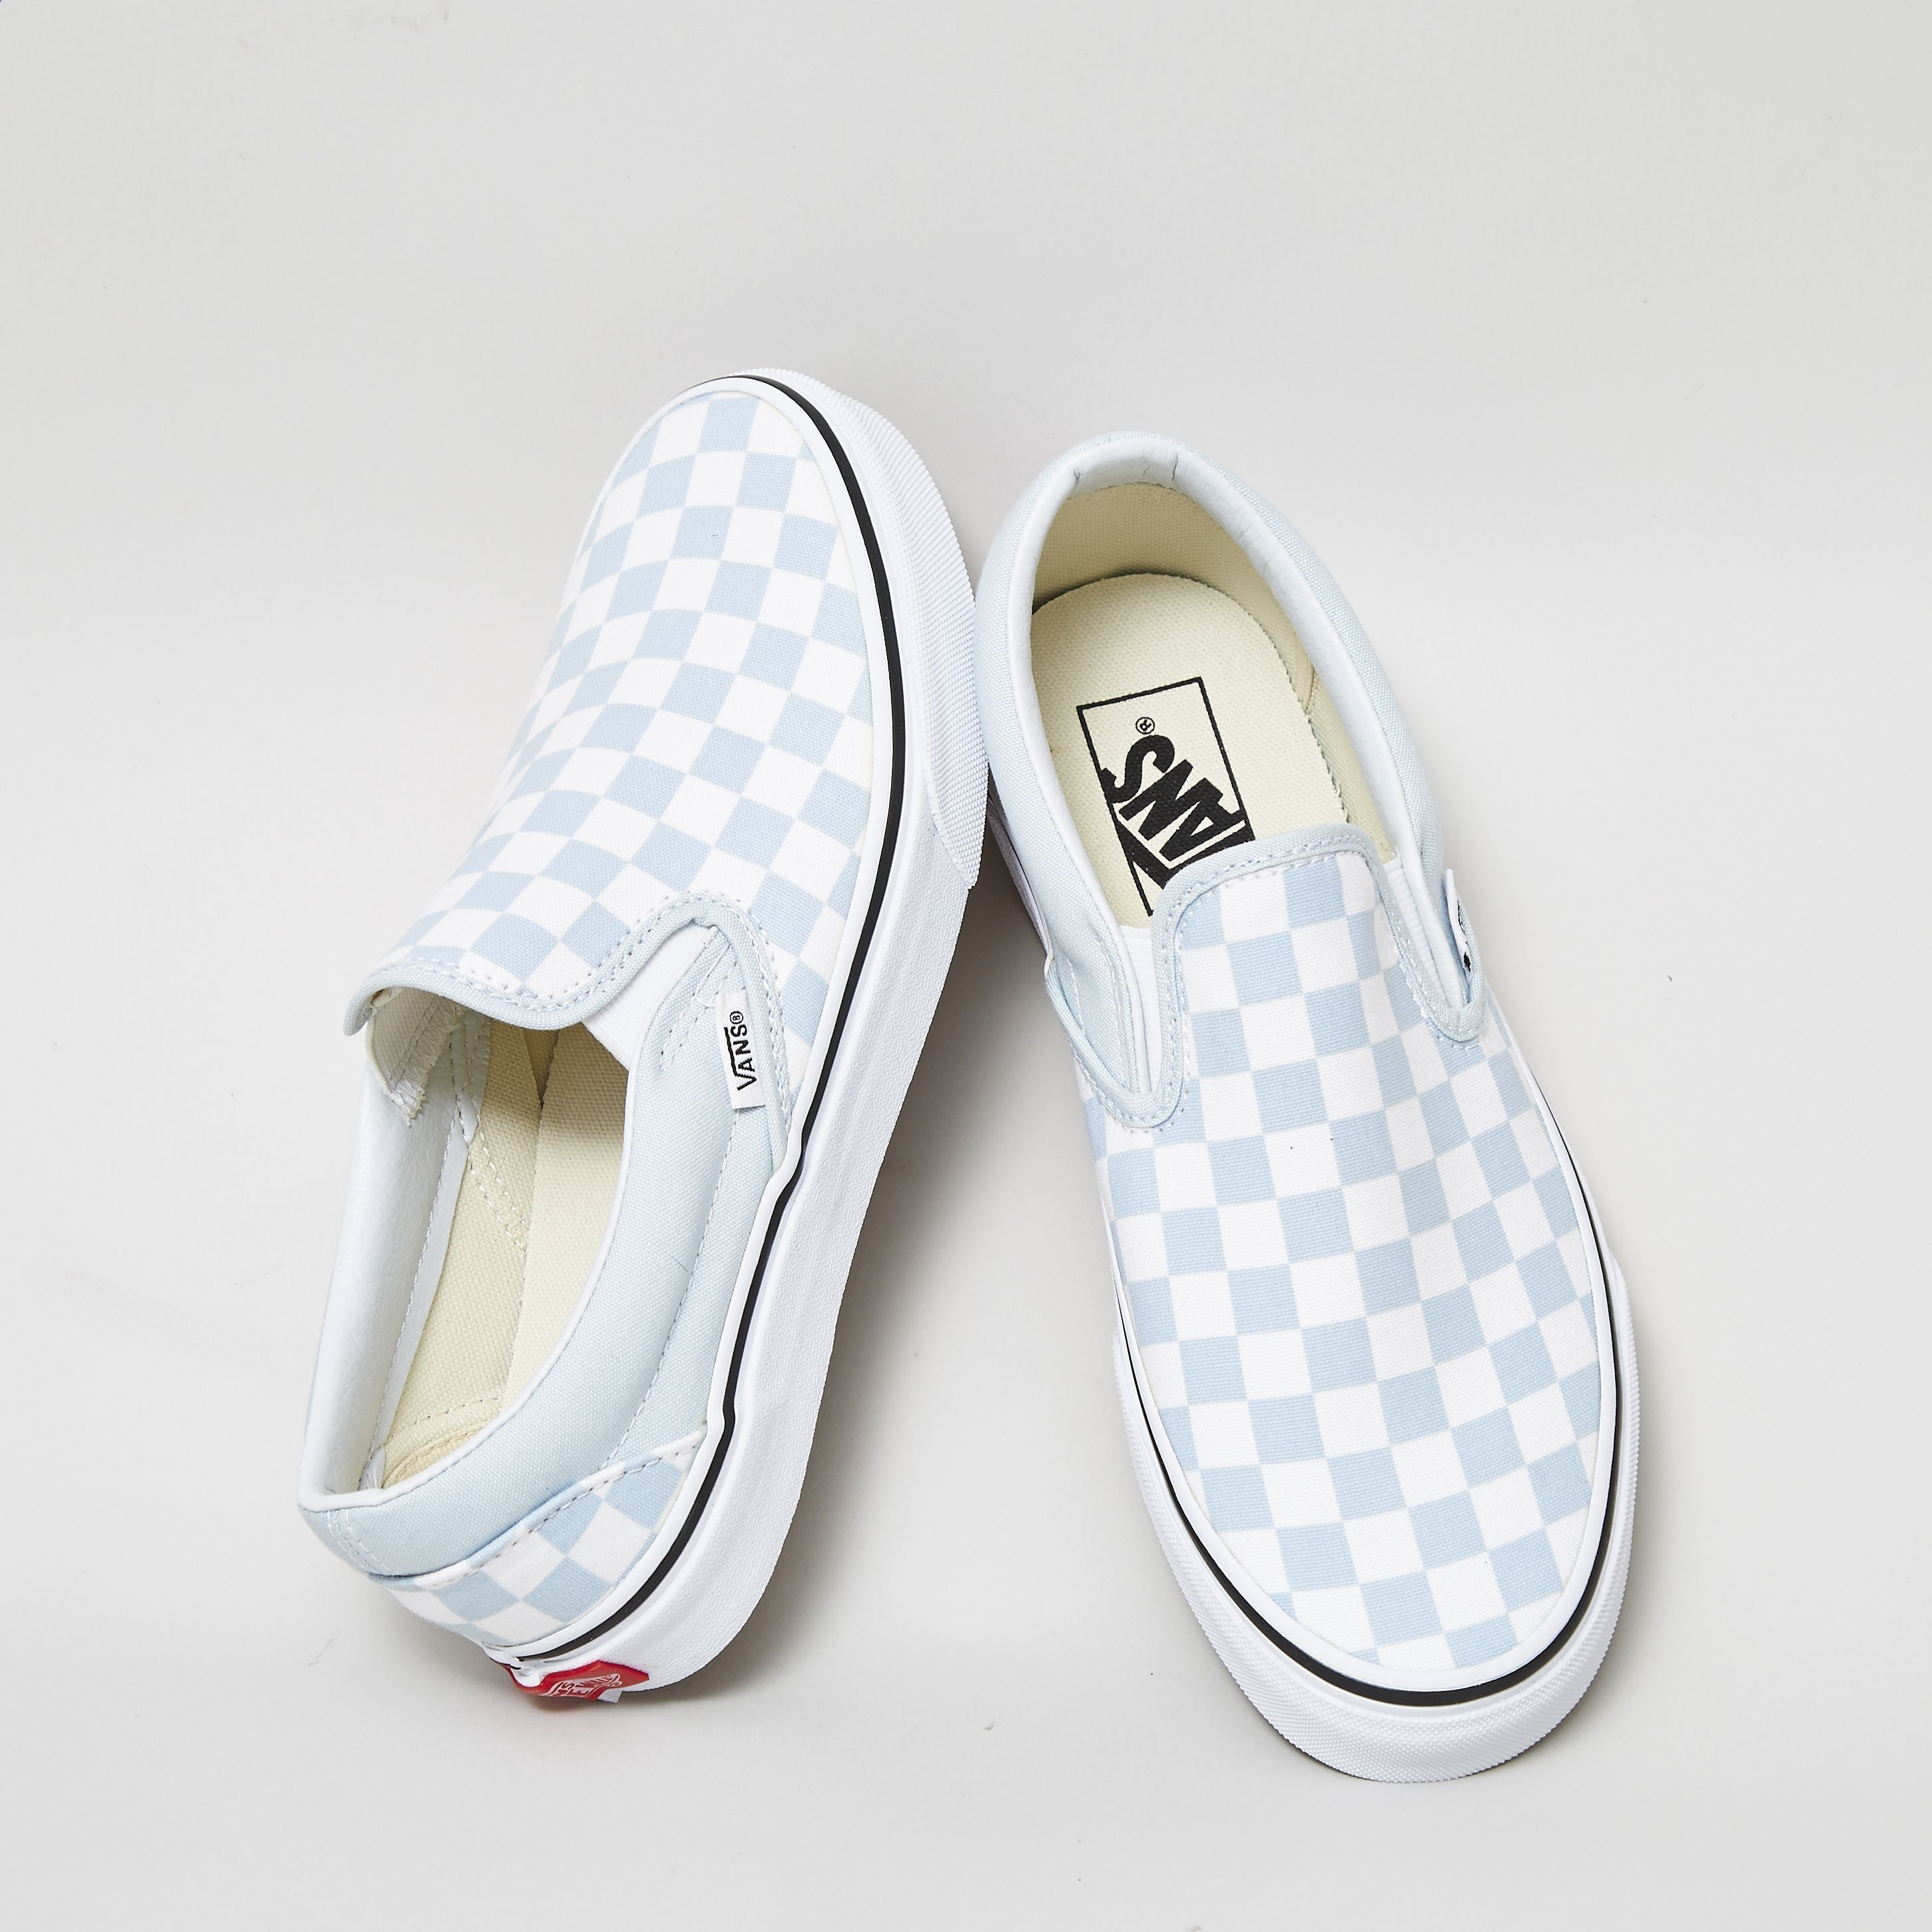 Slip On | Shop Shoes in 2020 | Vans checkerboard slip on